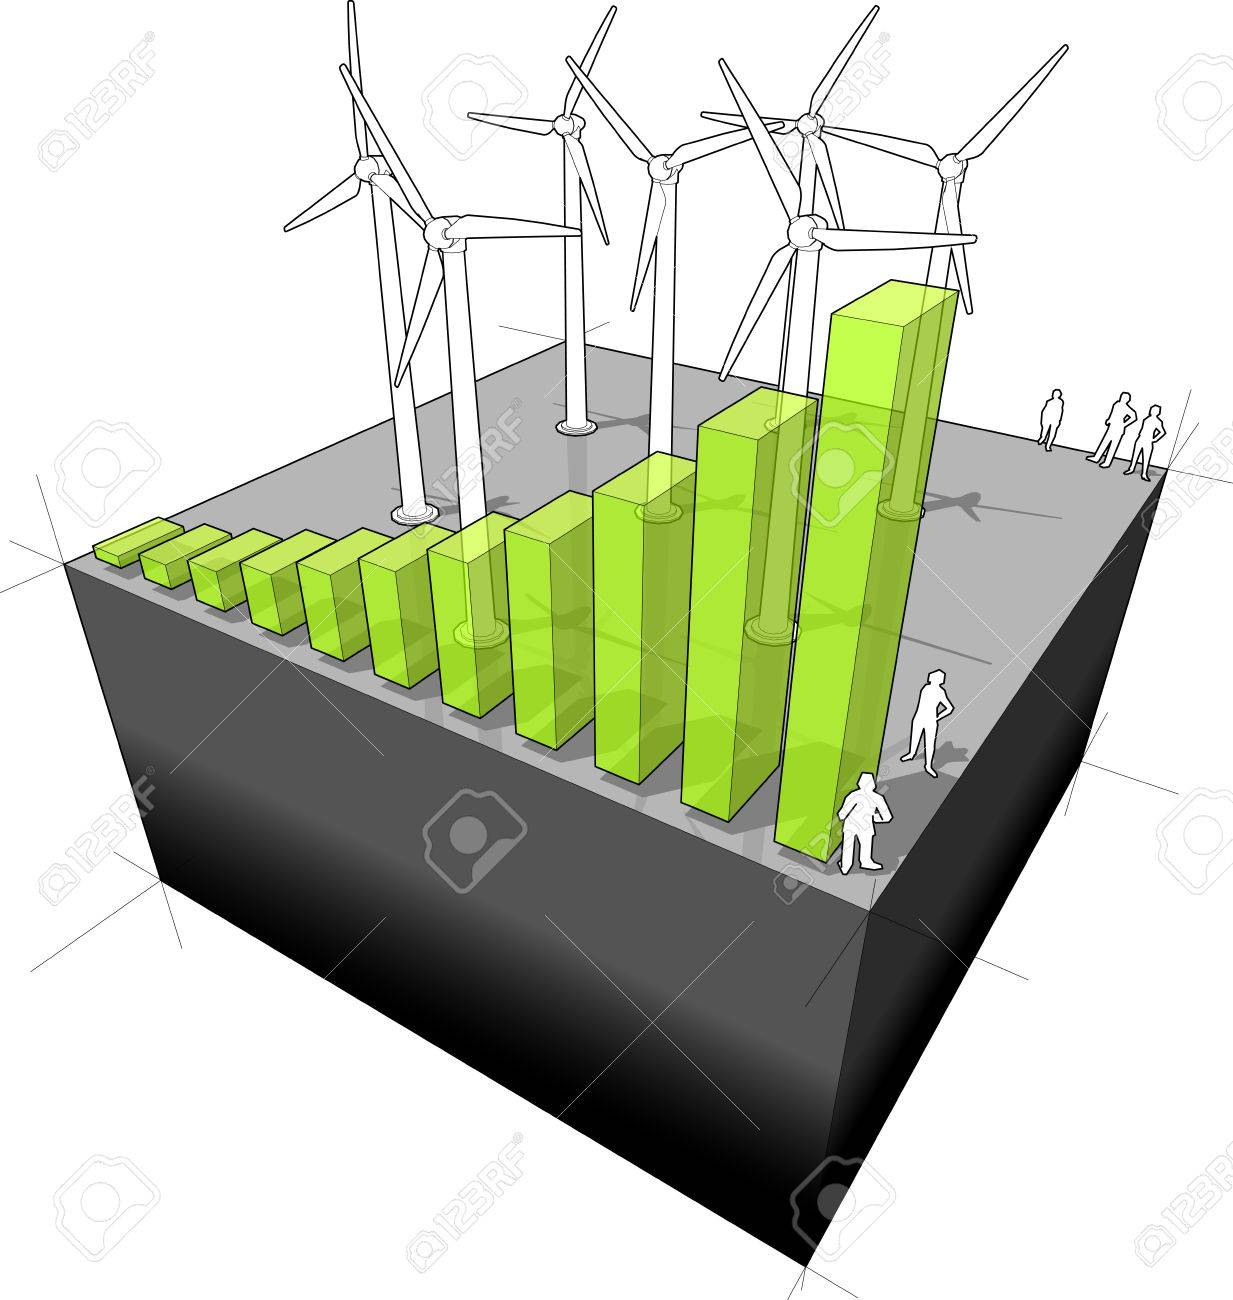 hight resolution of diagram of a wind turbine farm with rising bar diagram meaning the rising importance or booming